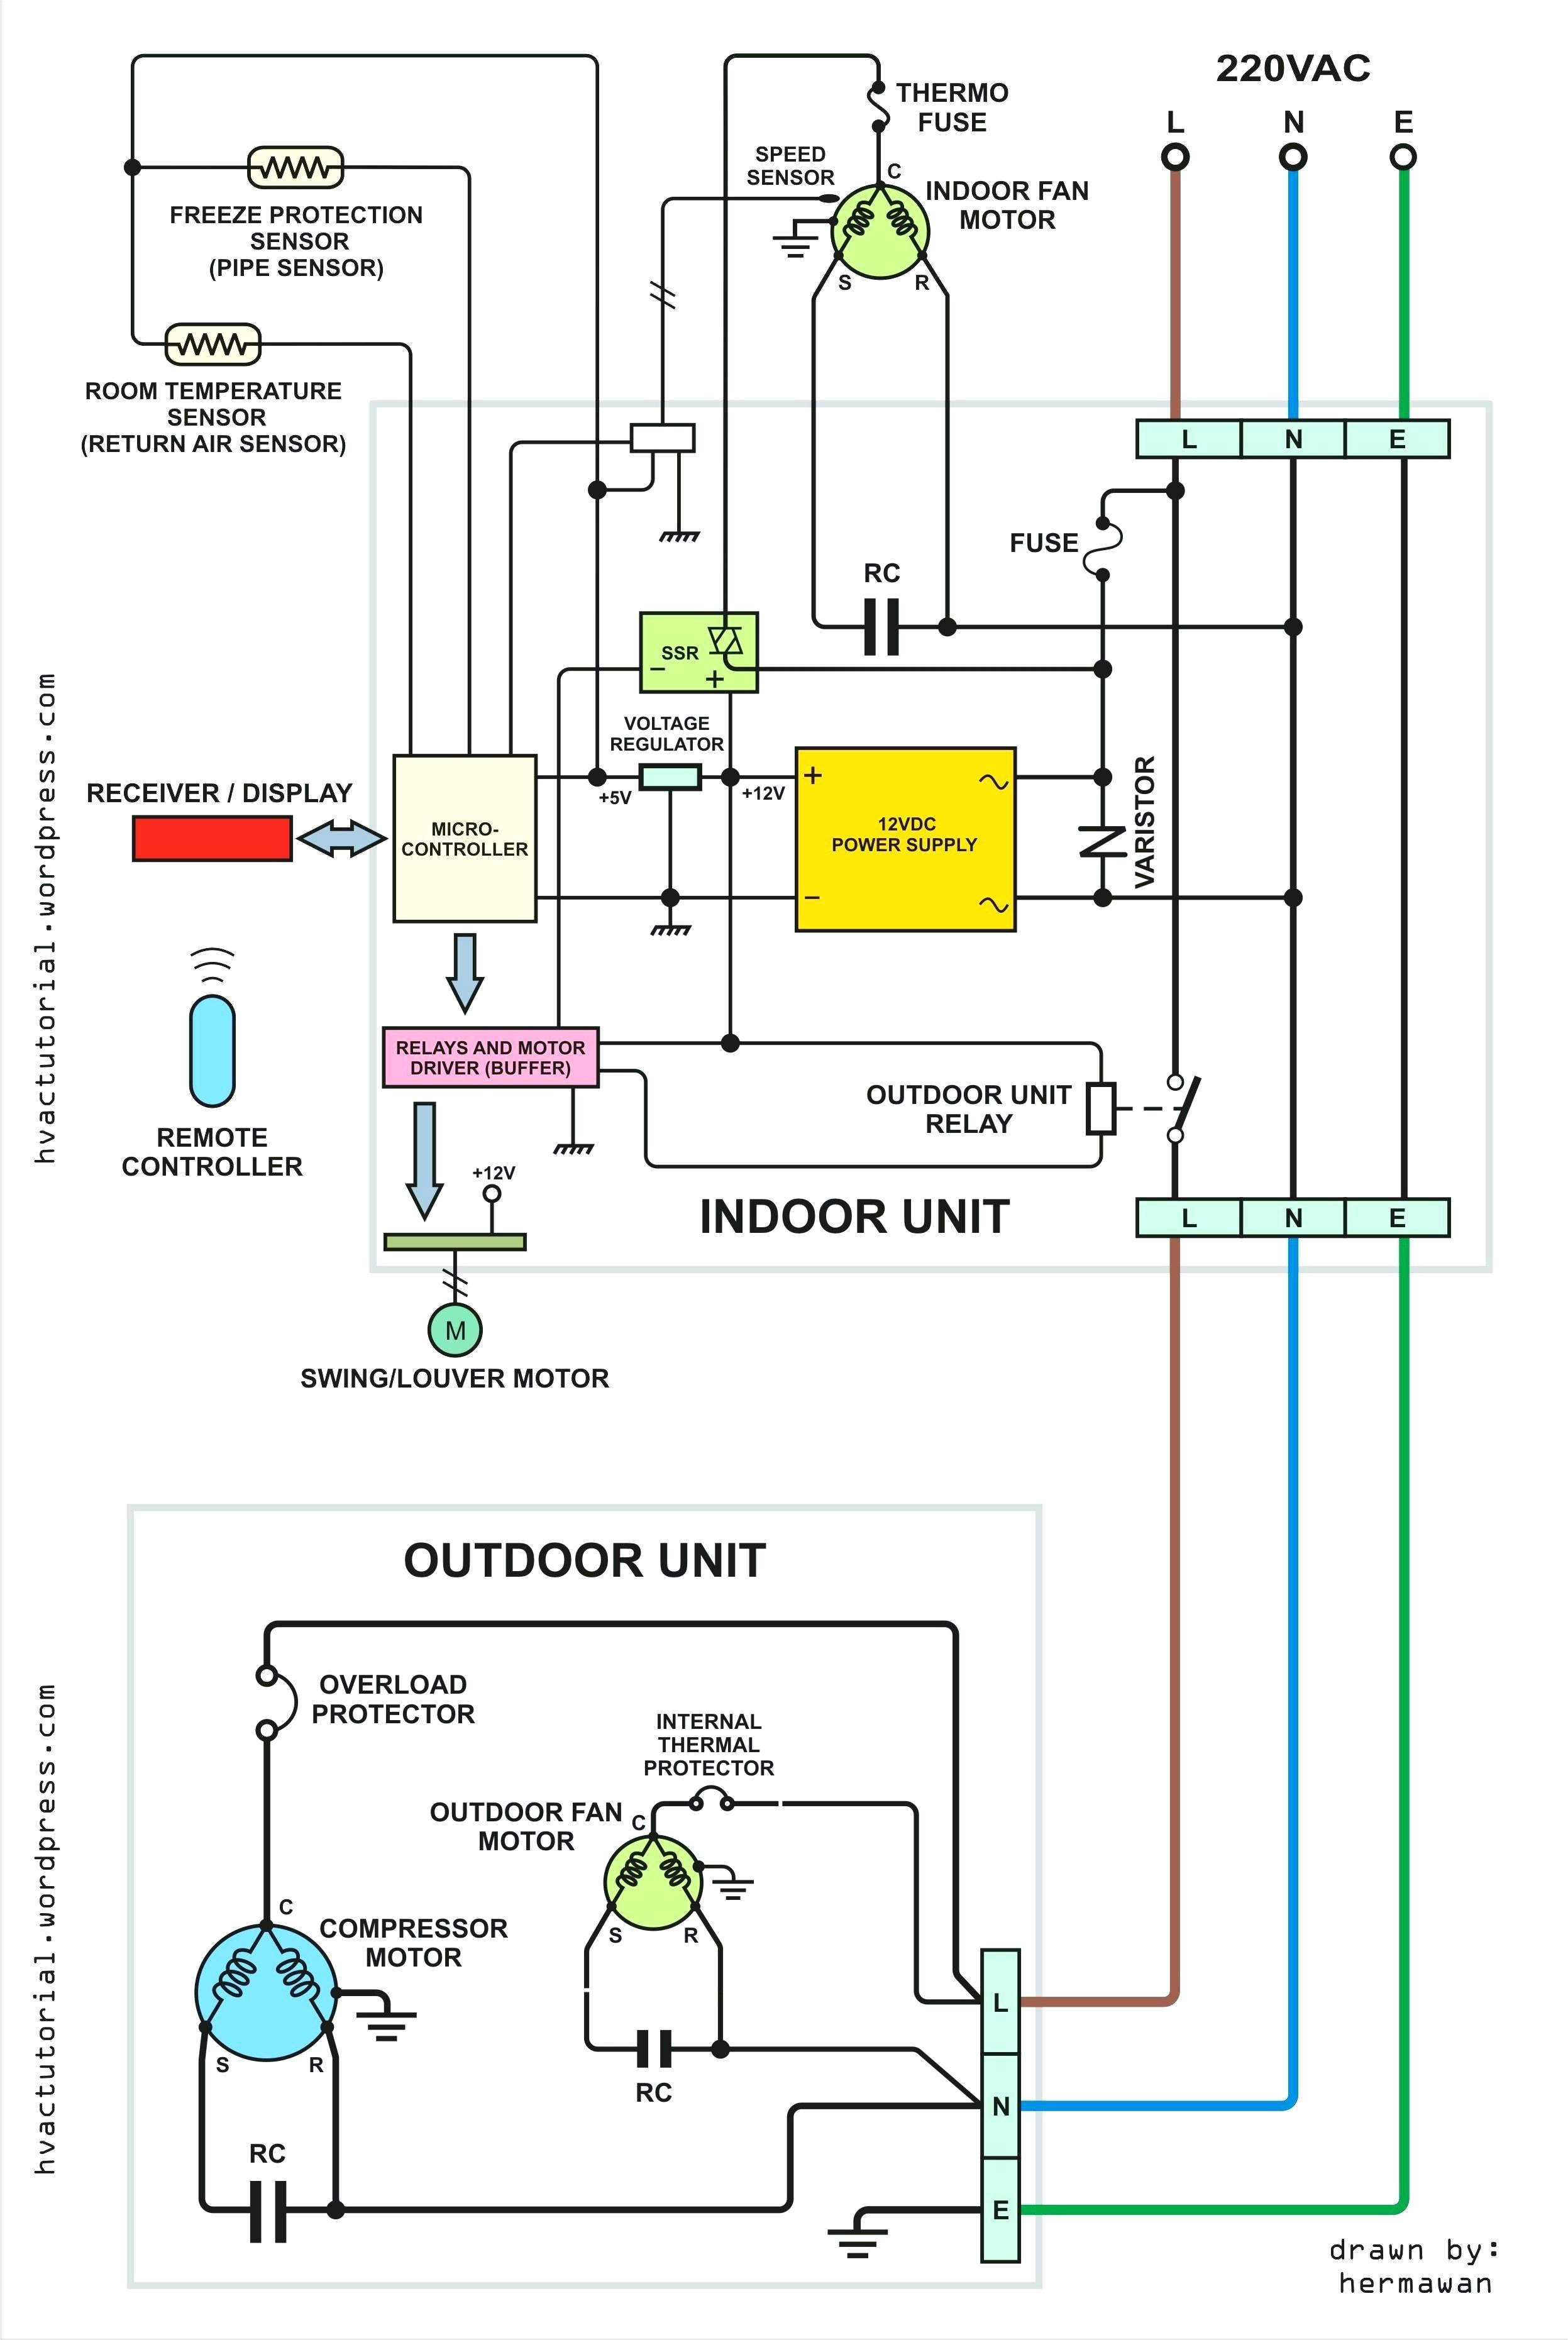 lennox furnace wiring diagram old thermostat me at unbelievable 11g 4 jpg